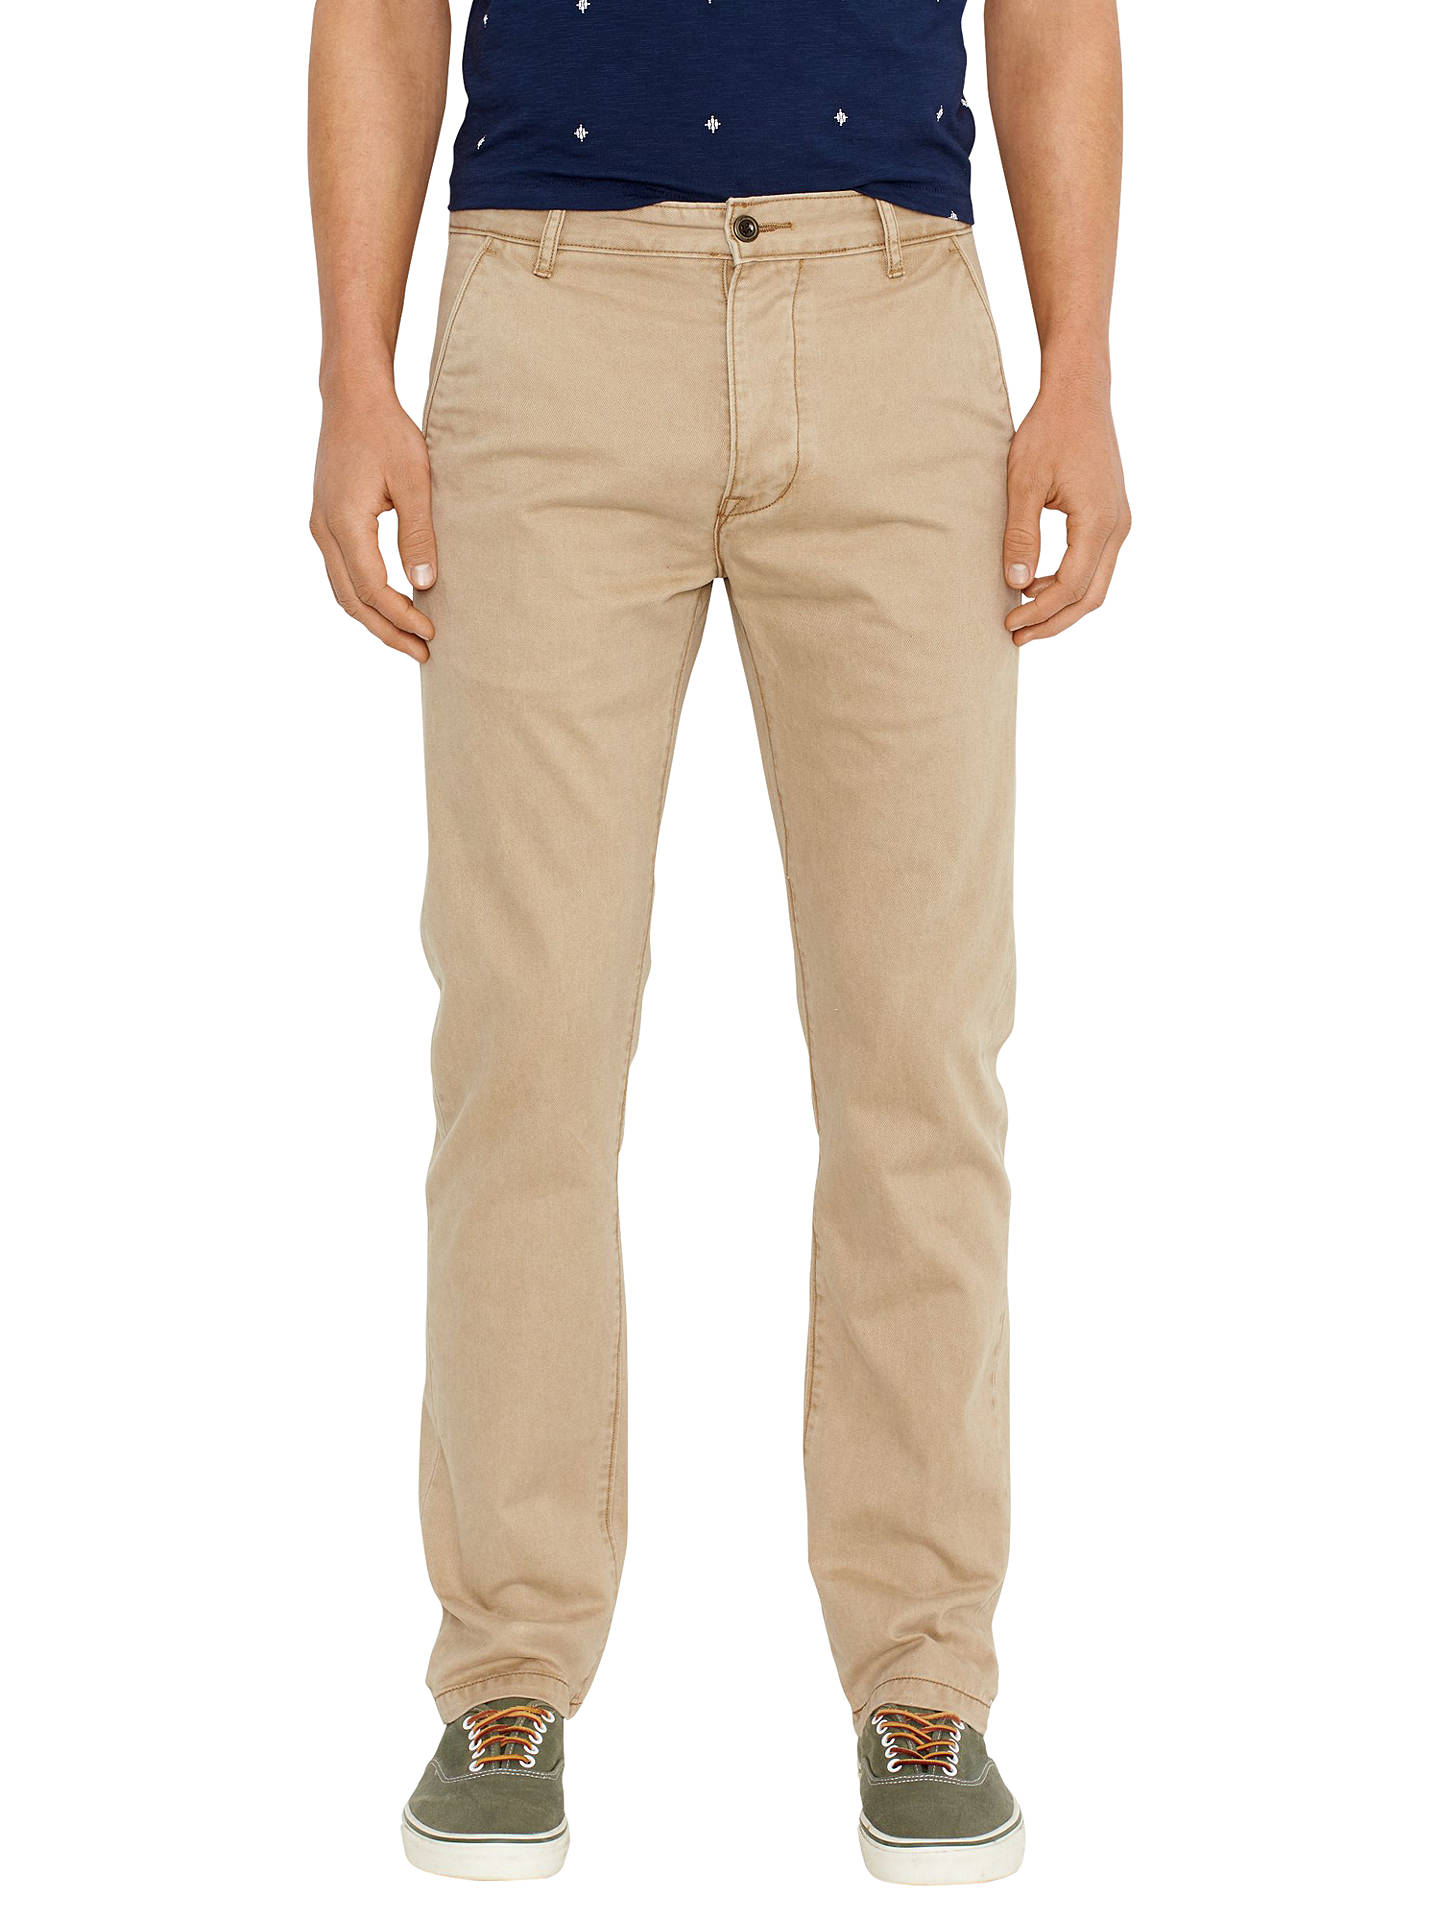 BuyLevi's Chino Trousers, Harvest Gold, 32S Online at johnlewis.com